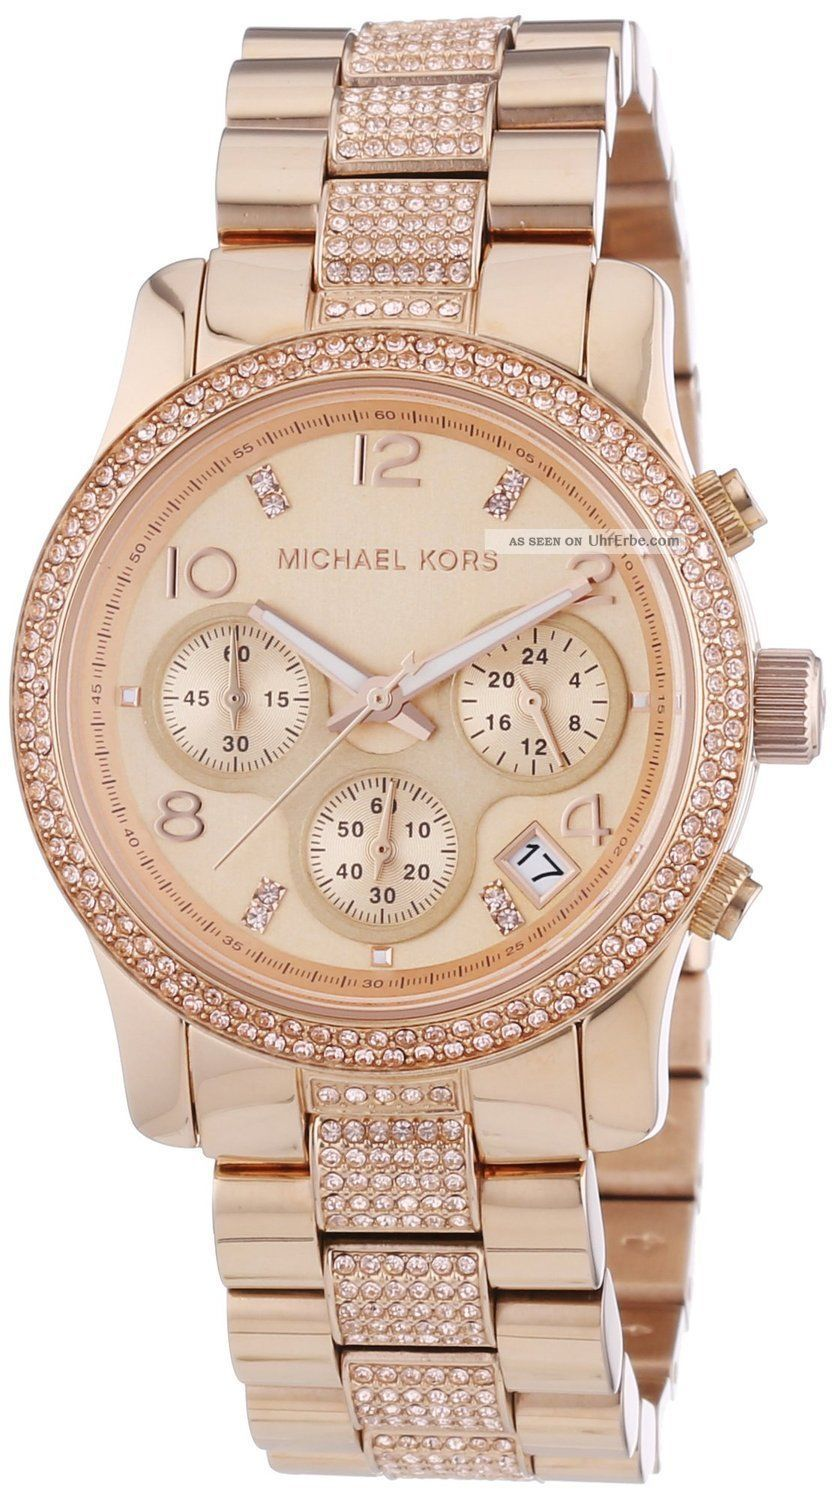 Uhr Rosegold Michael Kors Cheaper Than Retail Price Buy Clothing Accessories And Lifestyle Products For Women Men